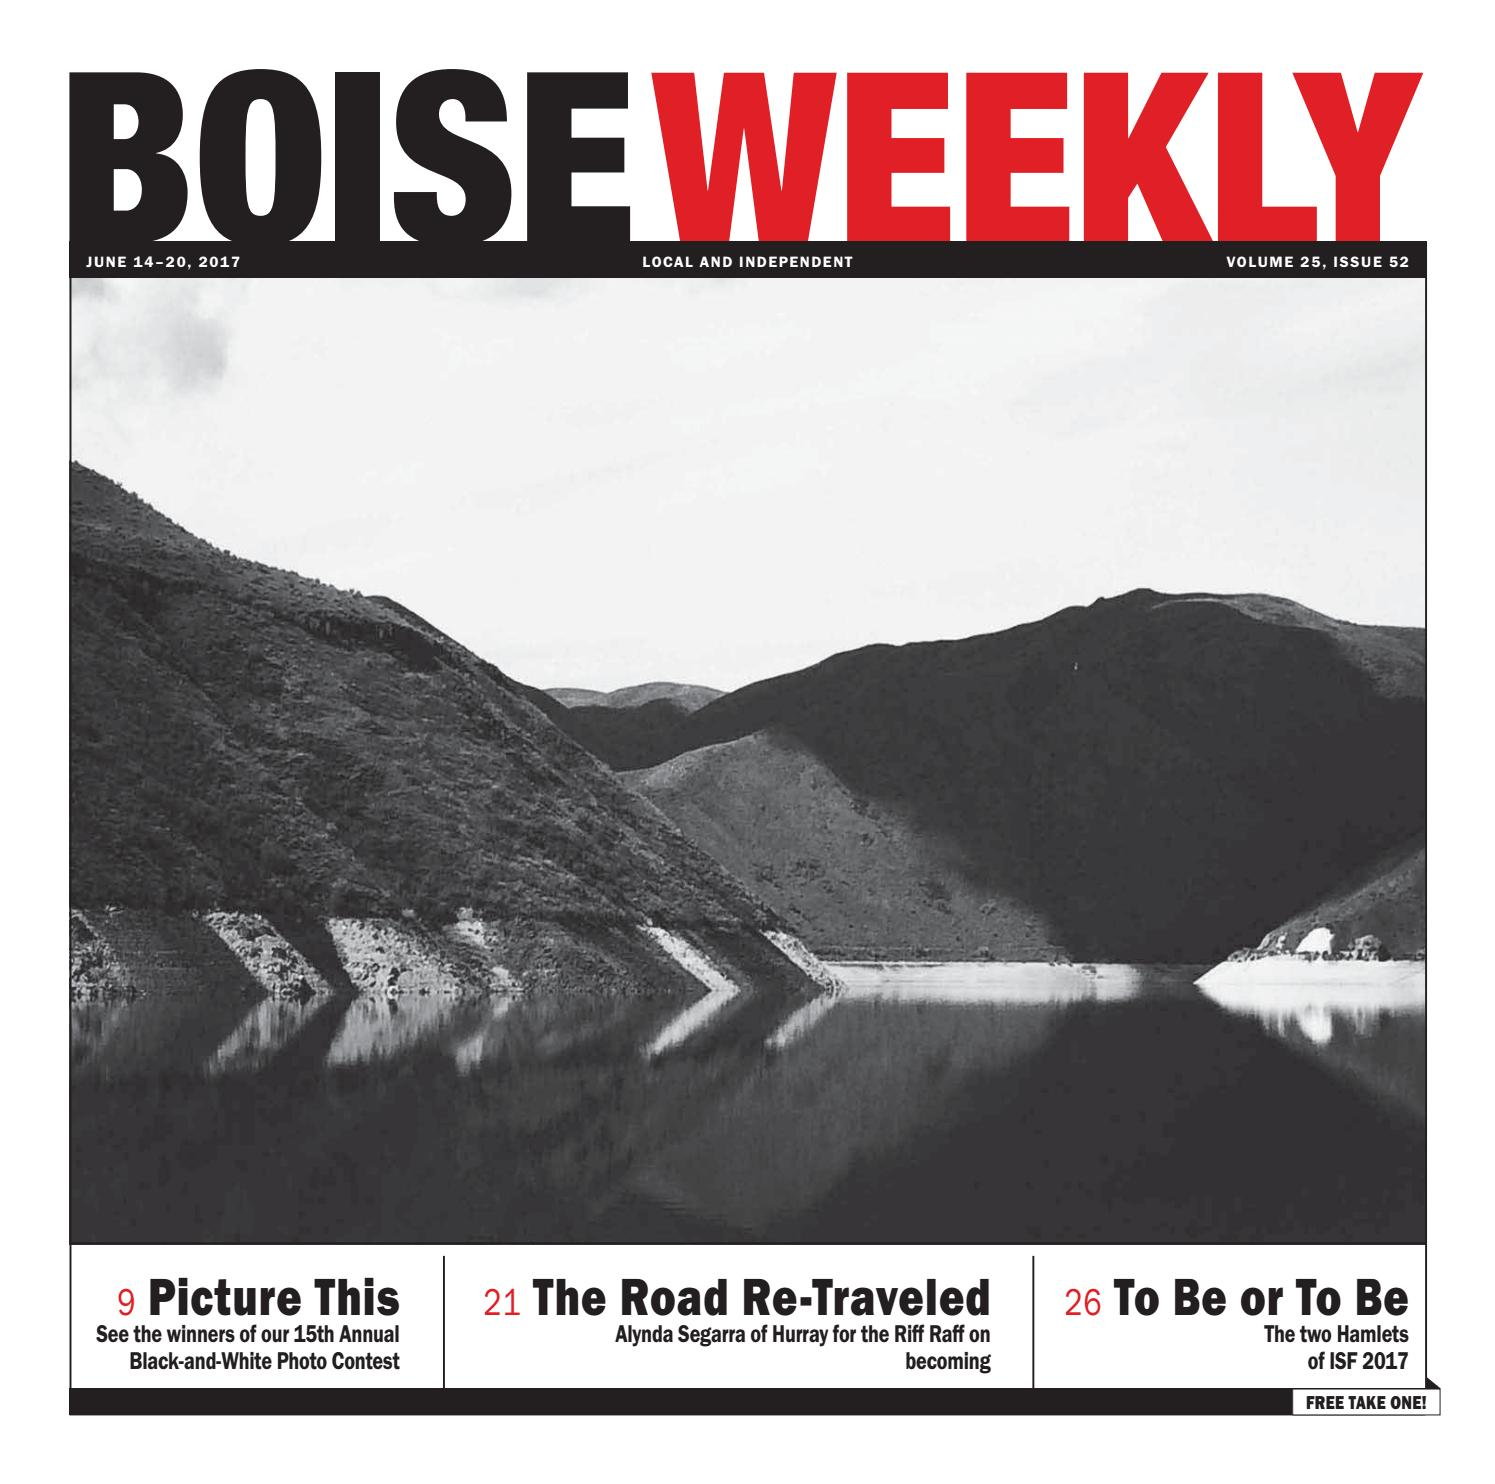 Boise weekly vol 25 issue 52 by boise weekly issuu fandeluxe